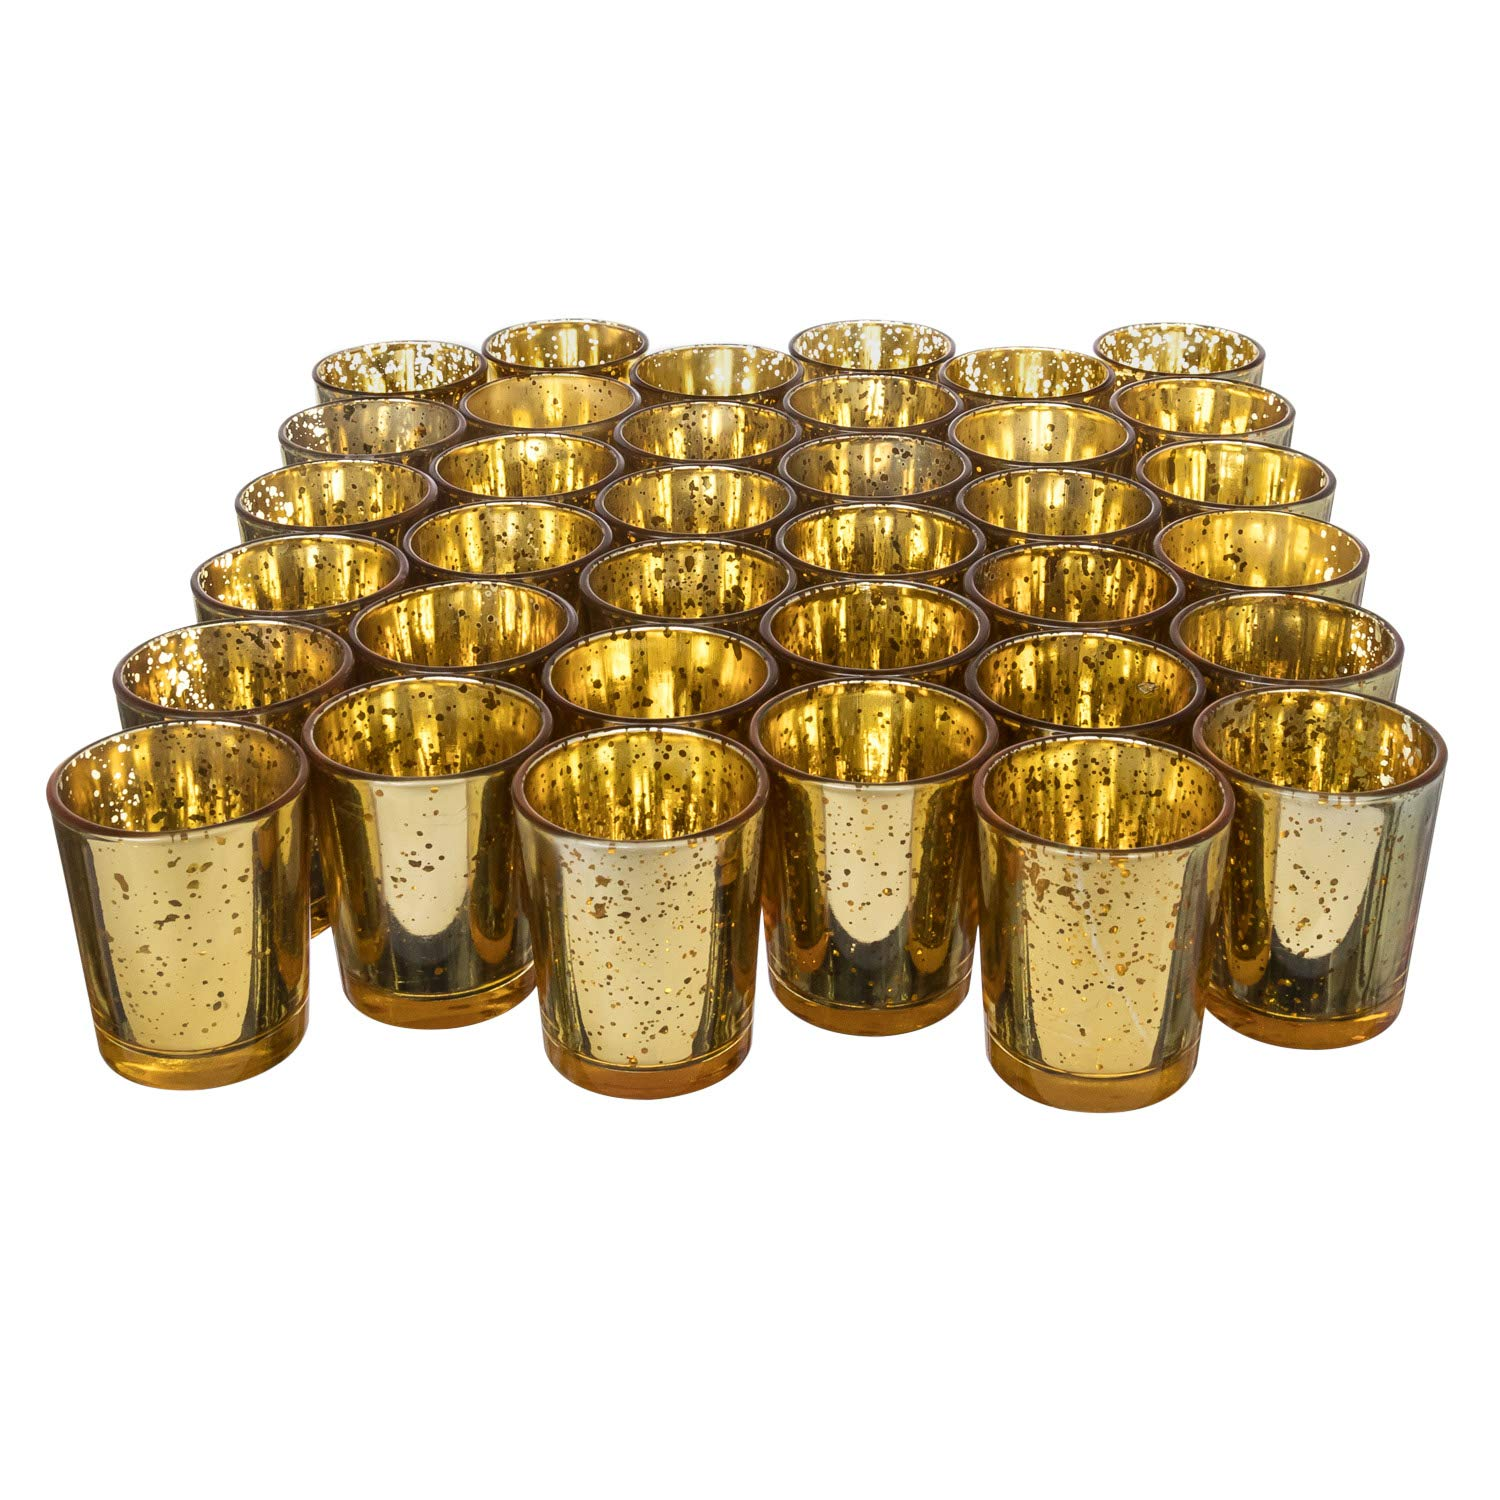 Royal Imports Gold Mercury Glass Votive Candle Holder, Table Centerpiece Tealight Decoration for Elegant Dinner, Party, Wedding, Holiday, Set of 36 (Unfilled)